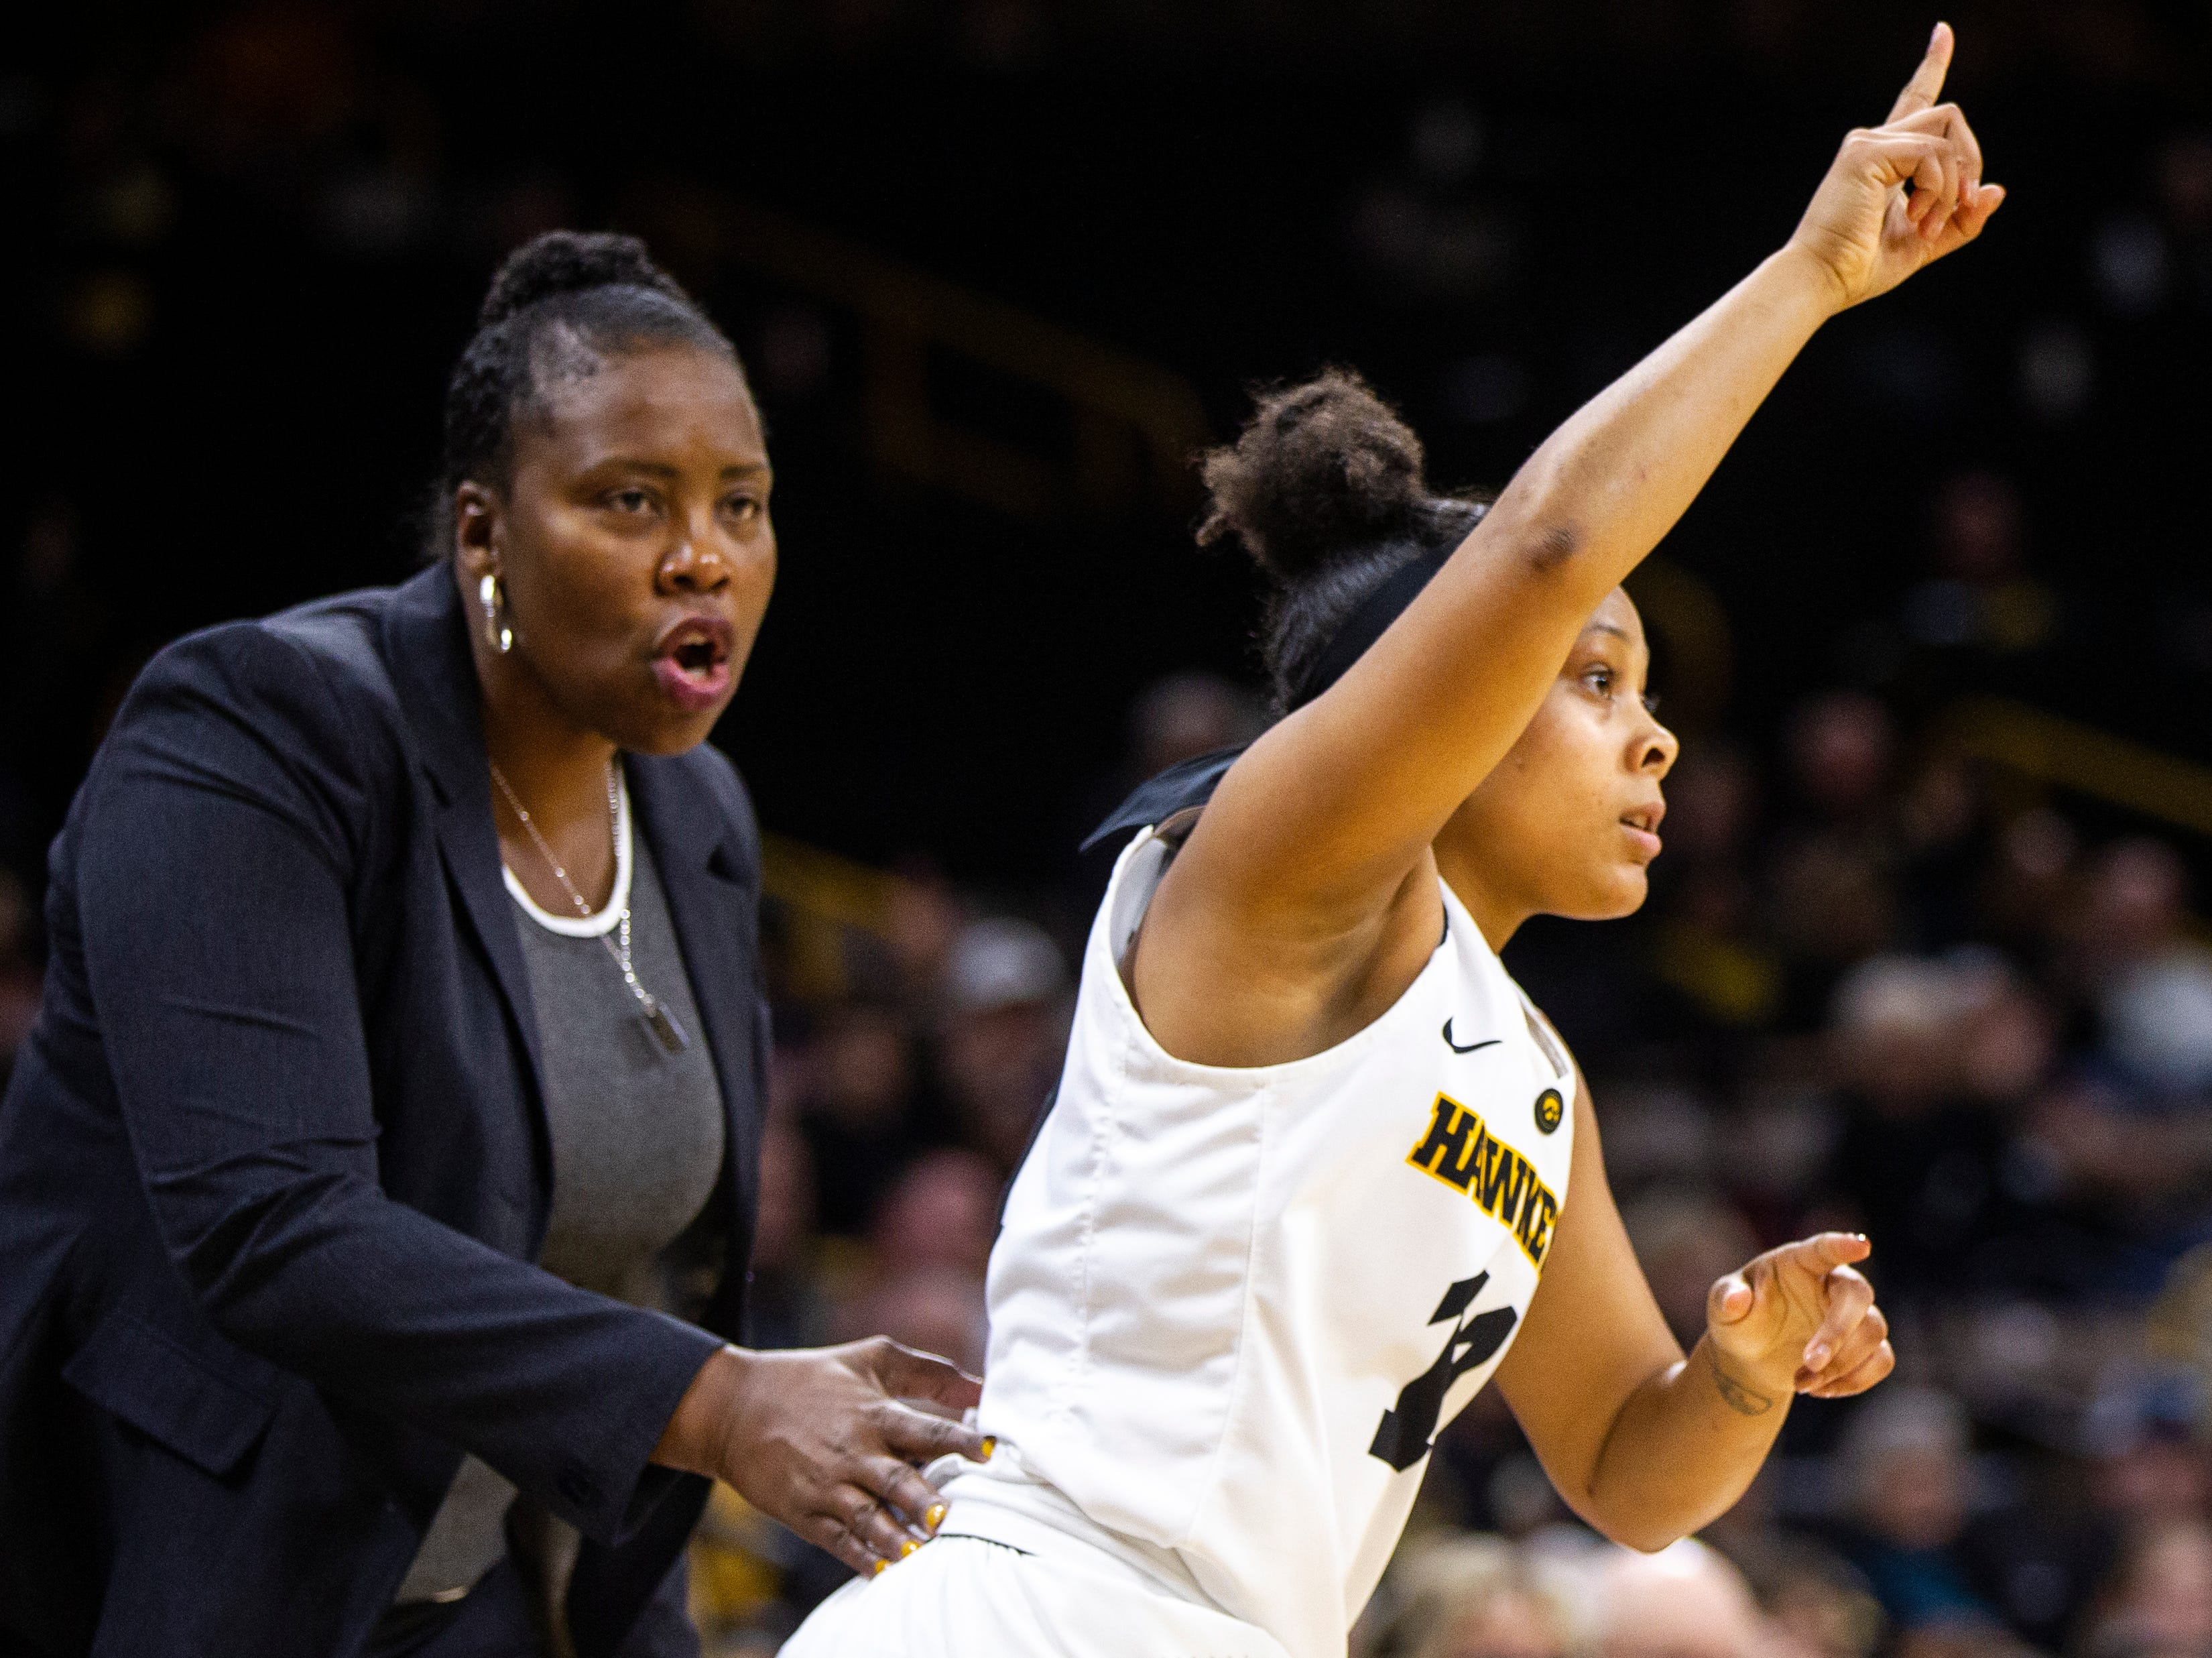 Iowa guard Tania Davis (11) gestures after making a 3-point basket in front of North Carolina Central head coach Trisha Stafford-Odom during an NCAA women's basketball game on Saturday, Nov. 17, 2018, at Carver-Hawkeye Arena in Iowa City.